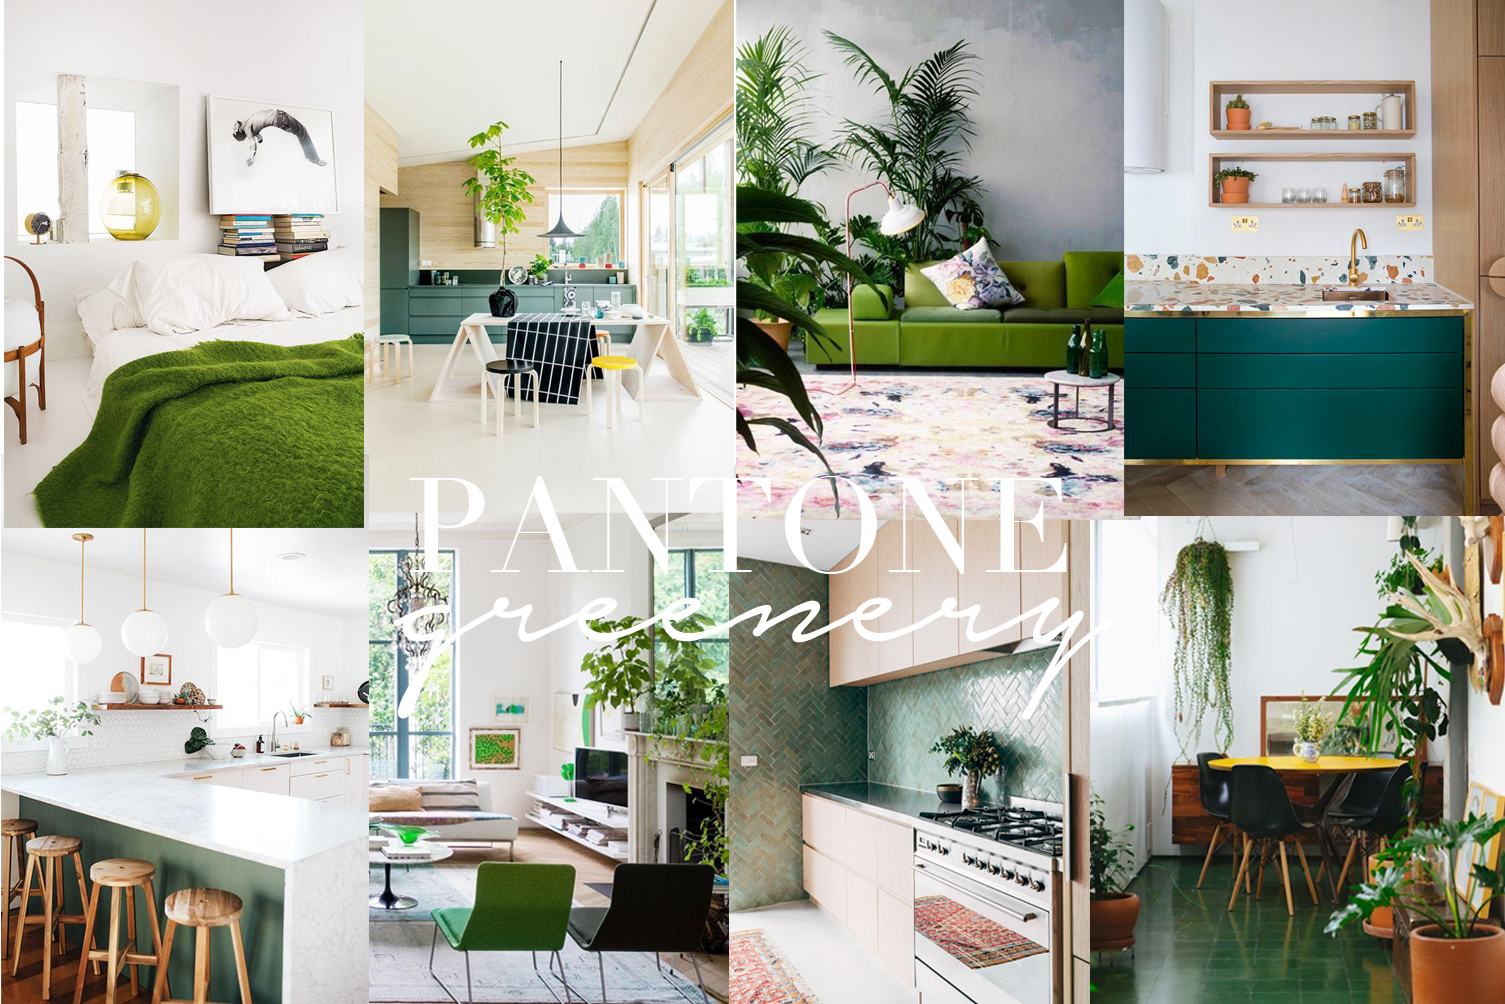 pantone color of the year greenery interior design ideas